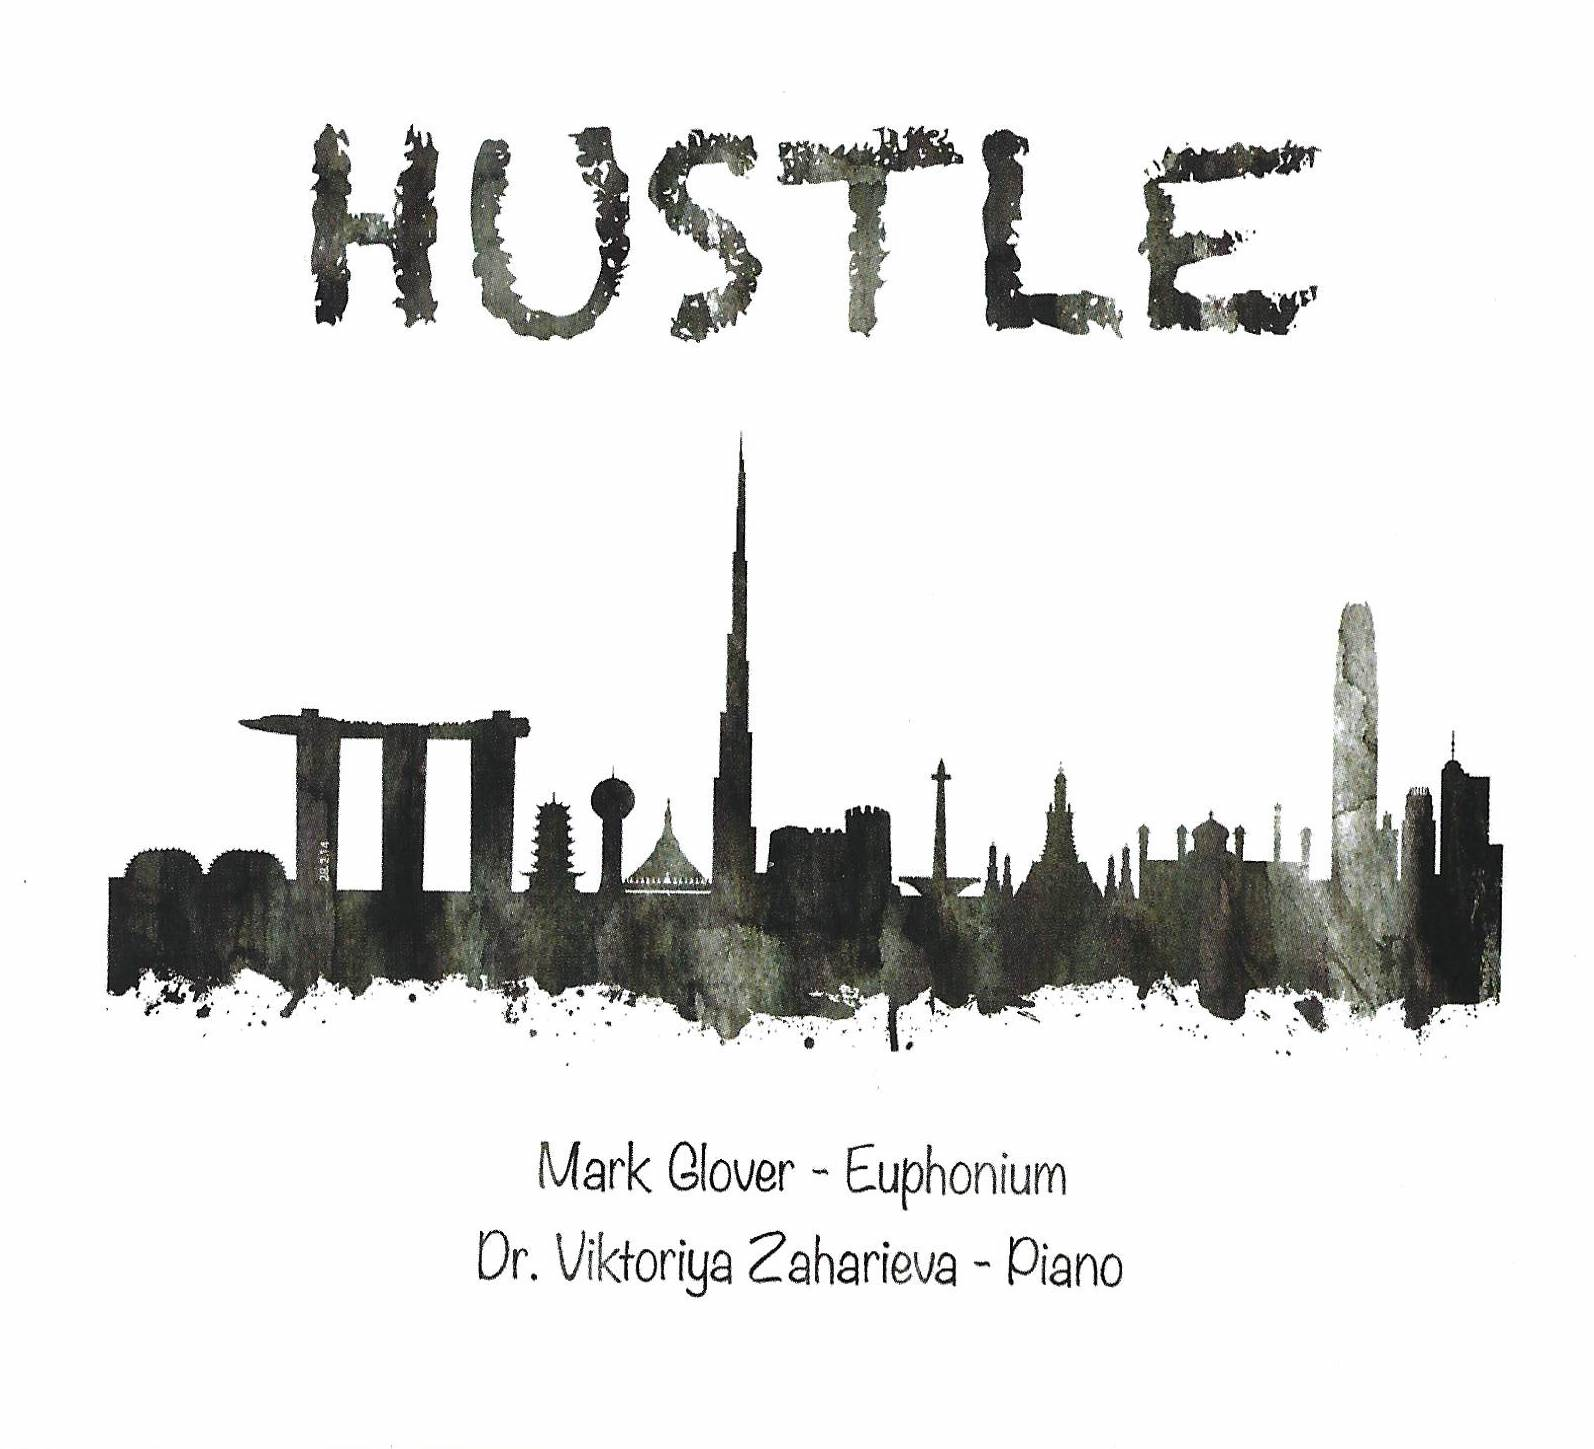 CD - Hustle - Mark Glover (euphonium) Dr. Viktoriya Zaharieva (piano)